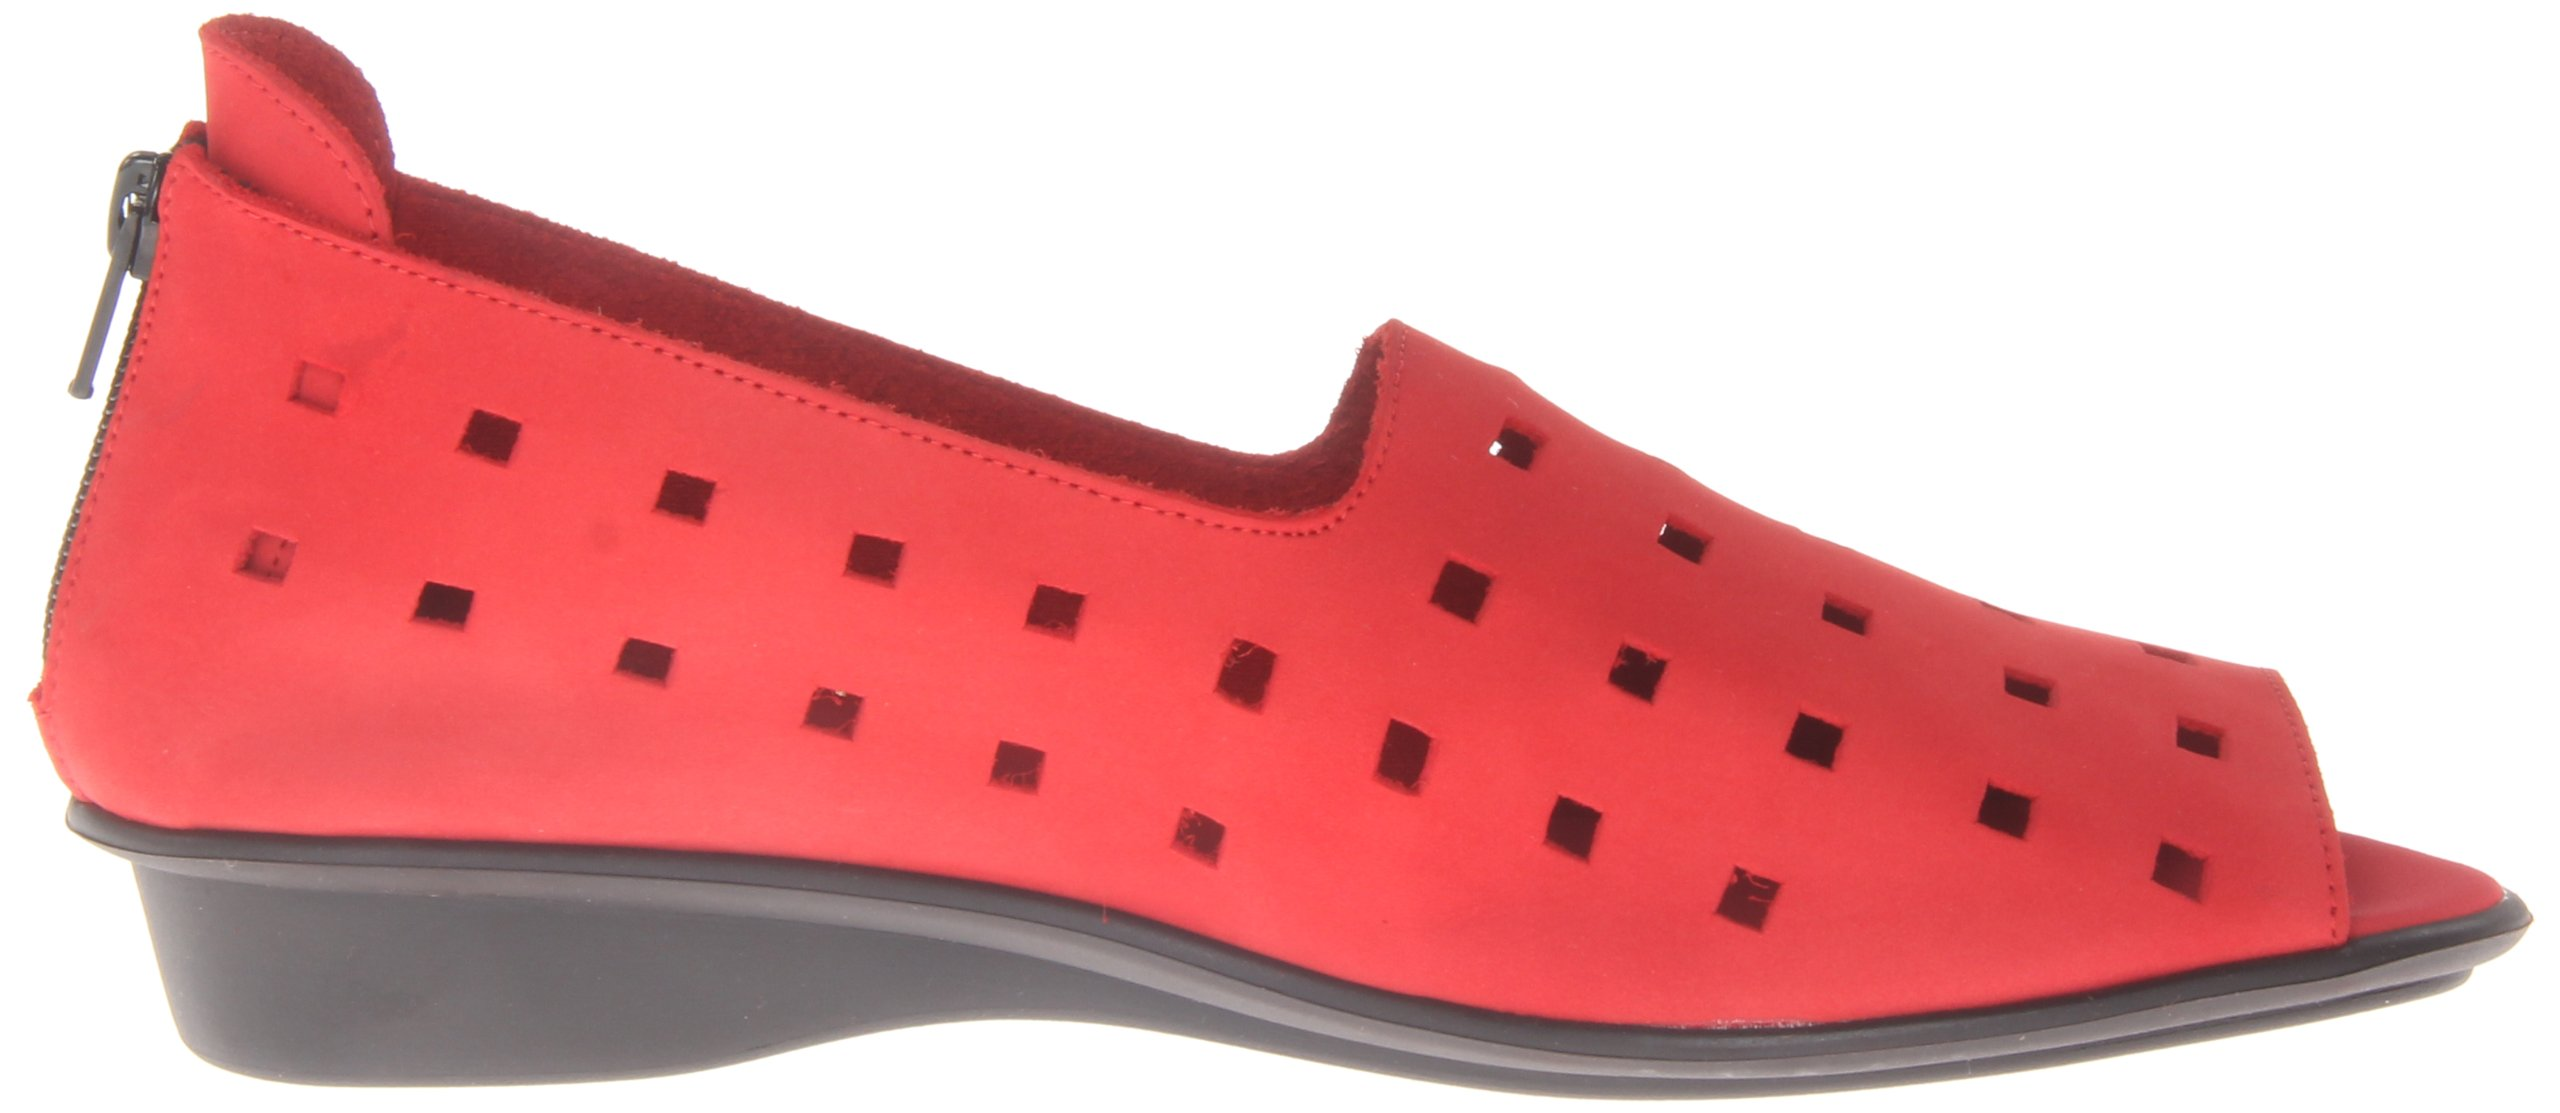 Sesto Meucci Women's Evonne Loafer,Dark Red Nubuk,8 M US by Sesto Meucci (Image #6)